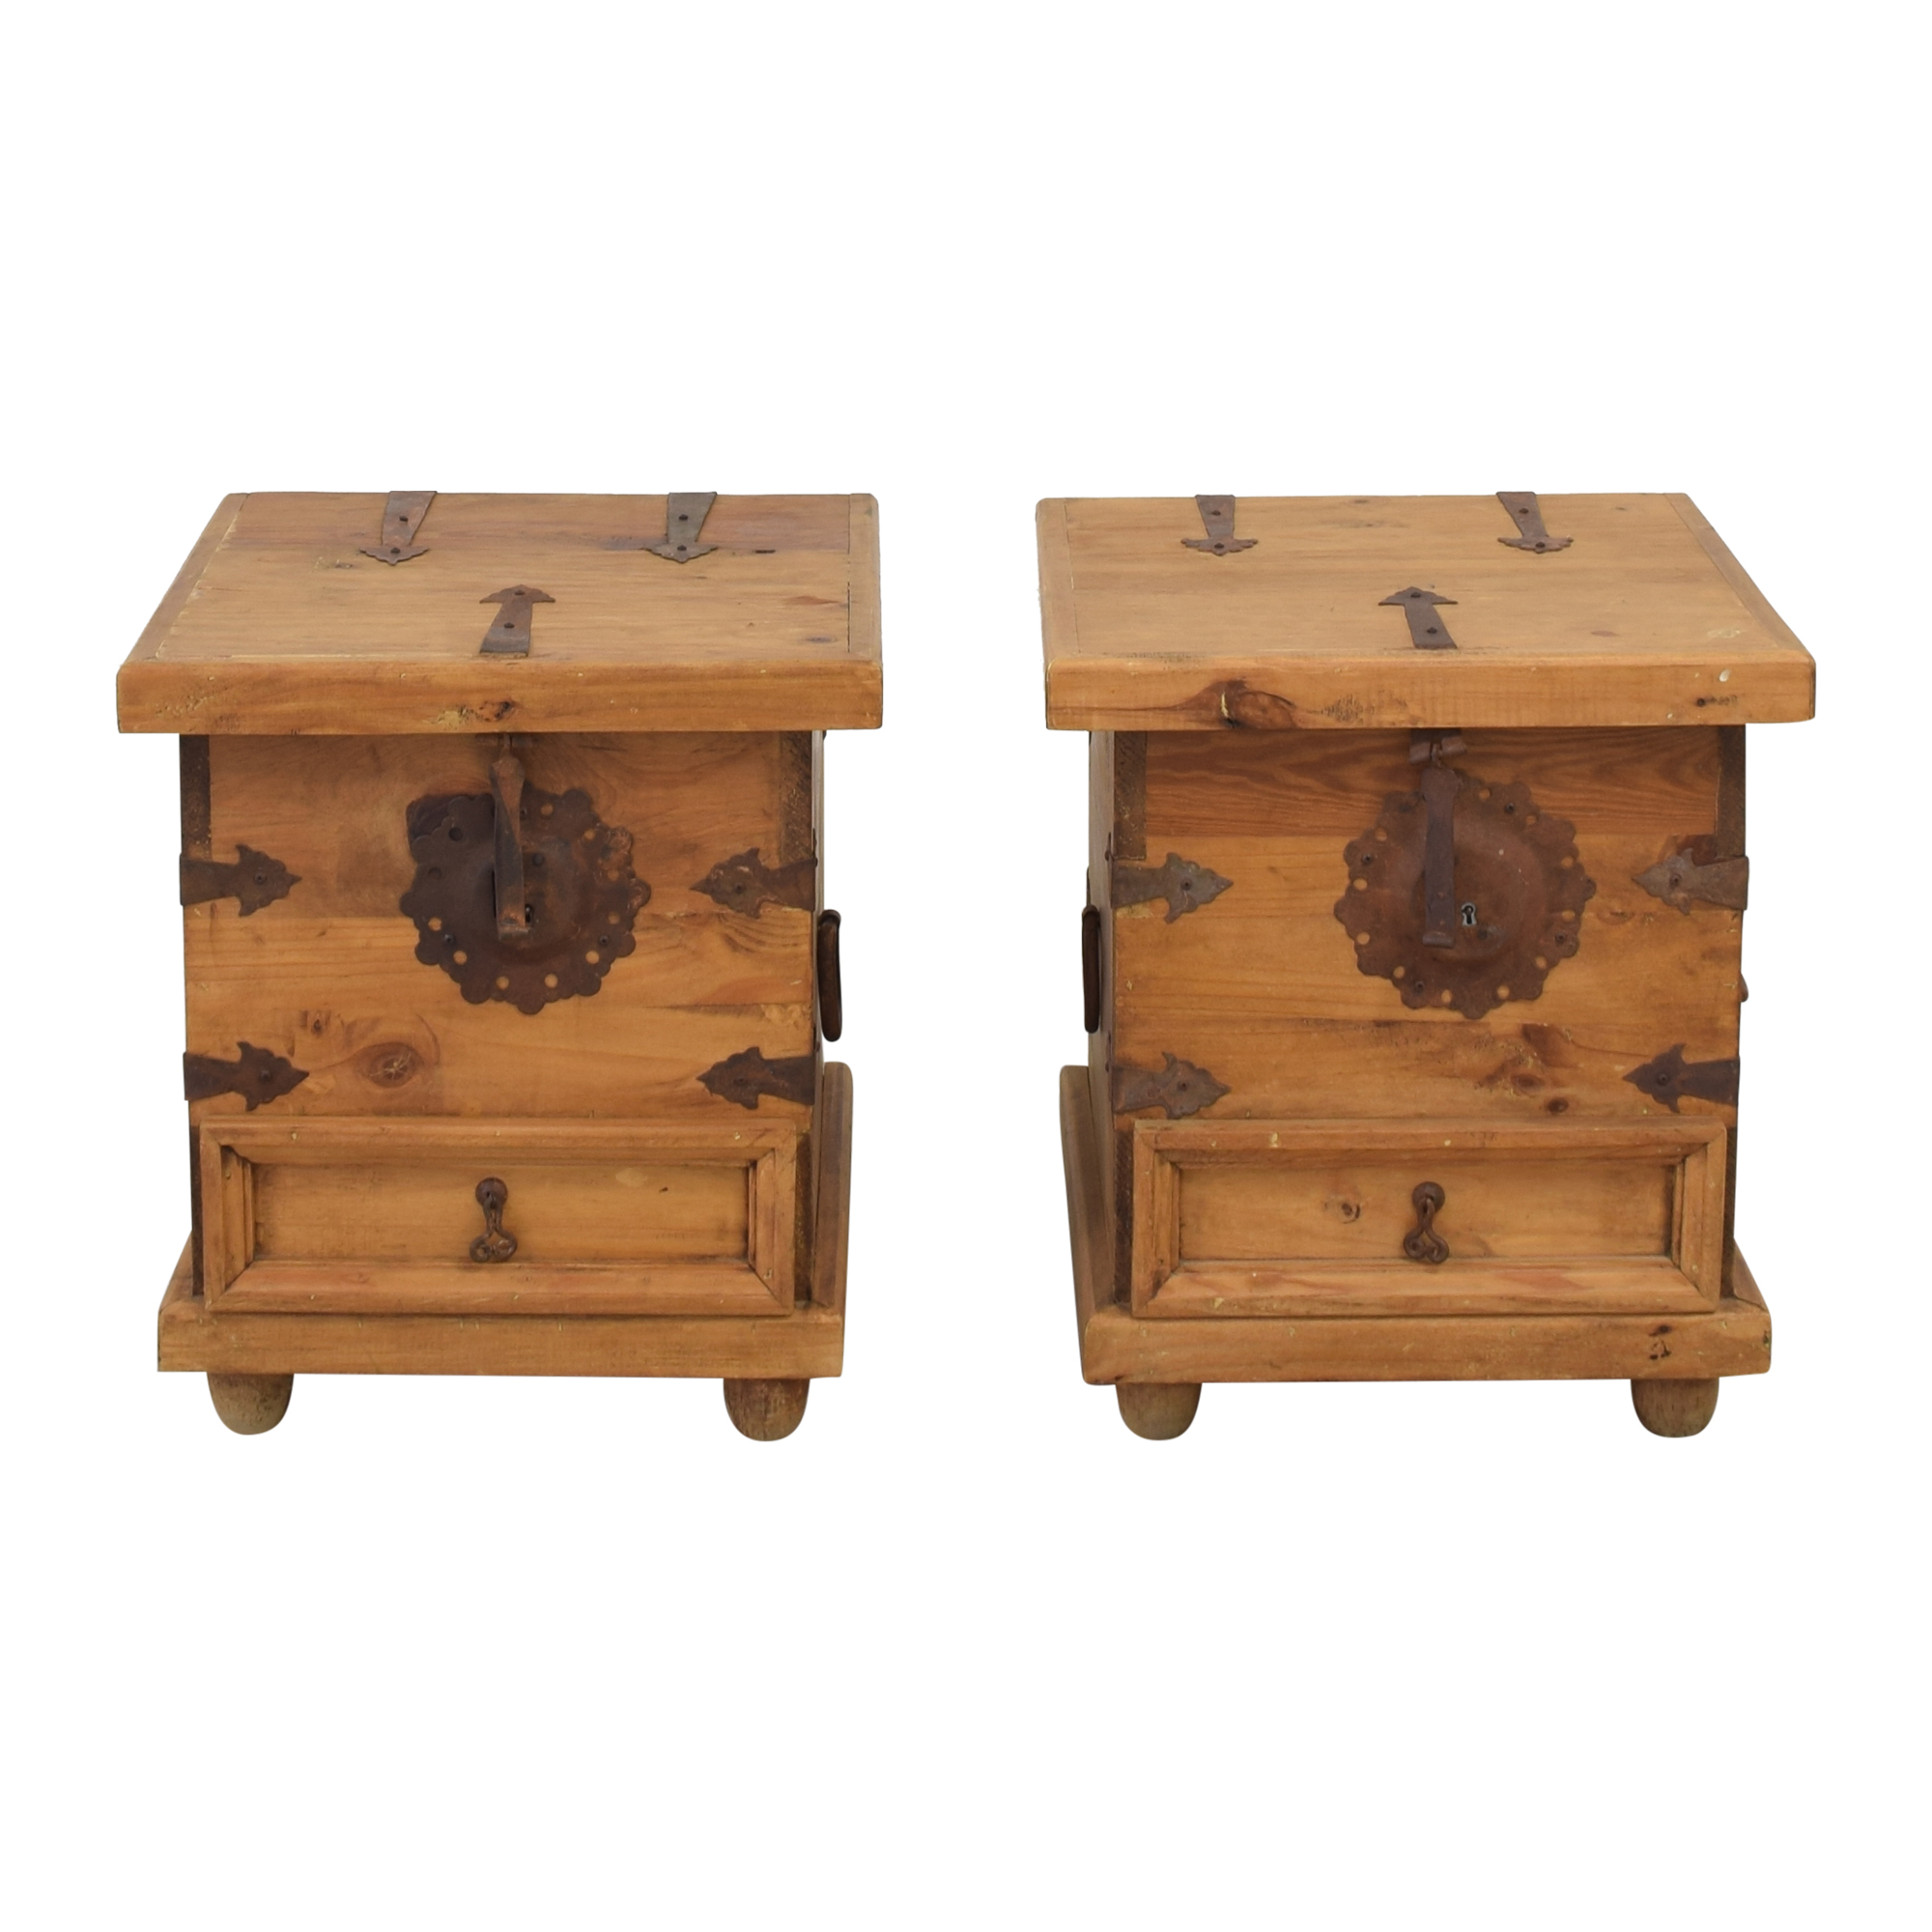 El Dorado Furniture El Dorado End Tables with Storage End Tables